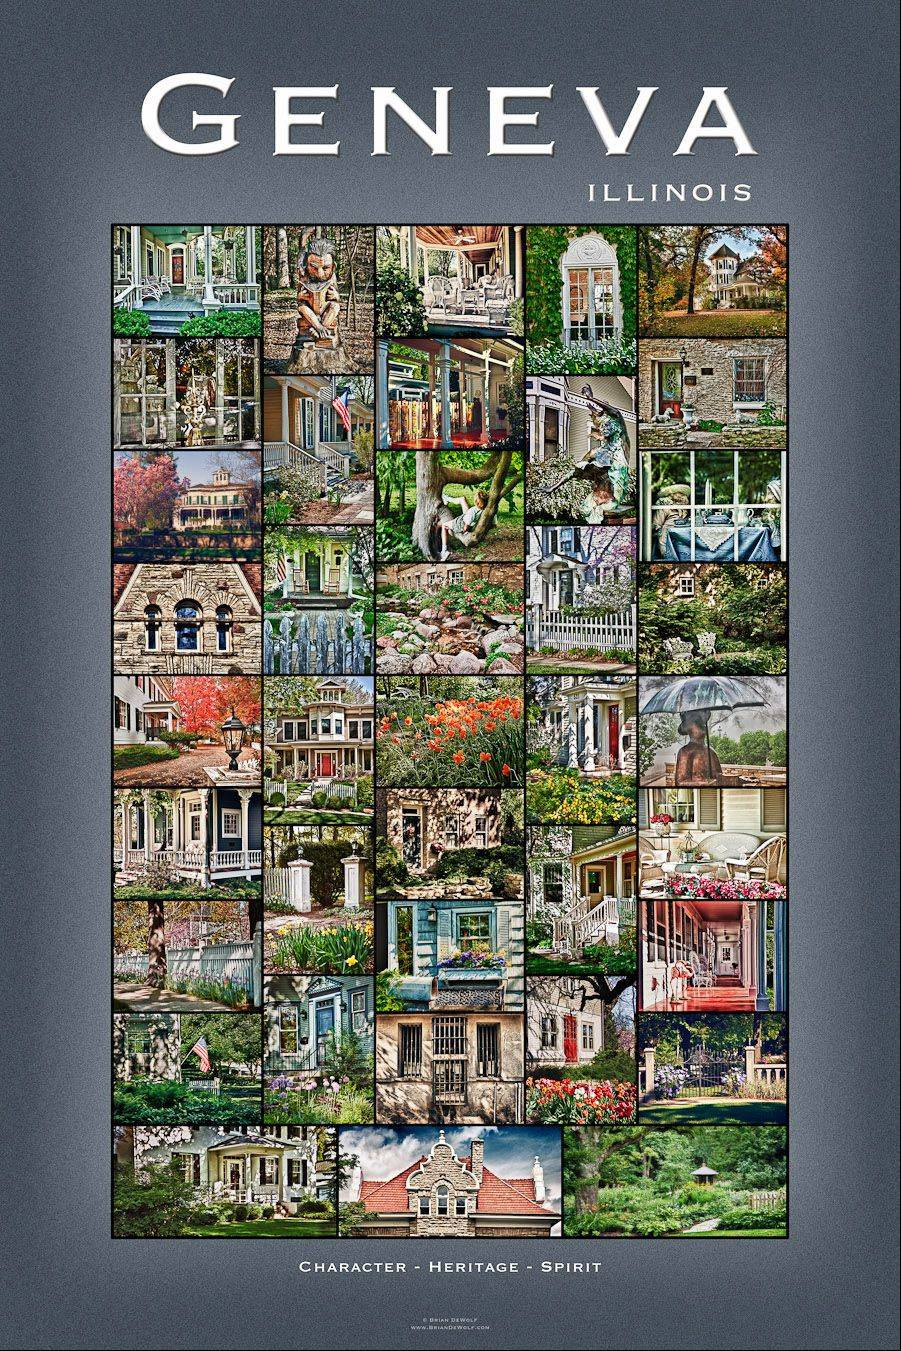 Artist Brian DeWolf's new Geneva poster features a collage of photos he has taken of historic Geneva homes, gardens and businesses.